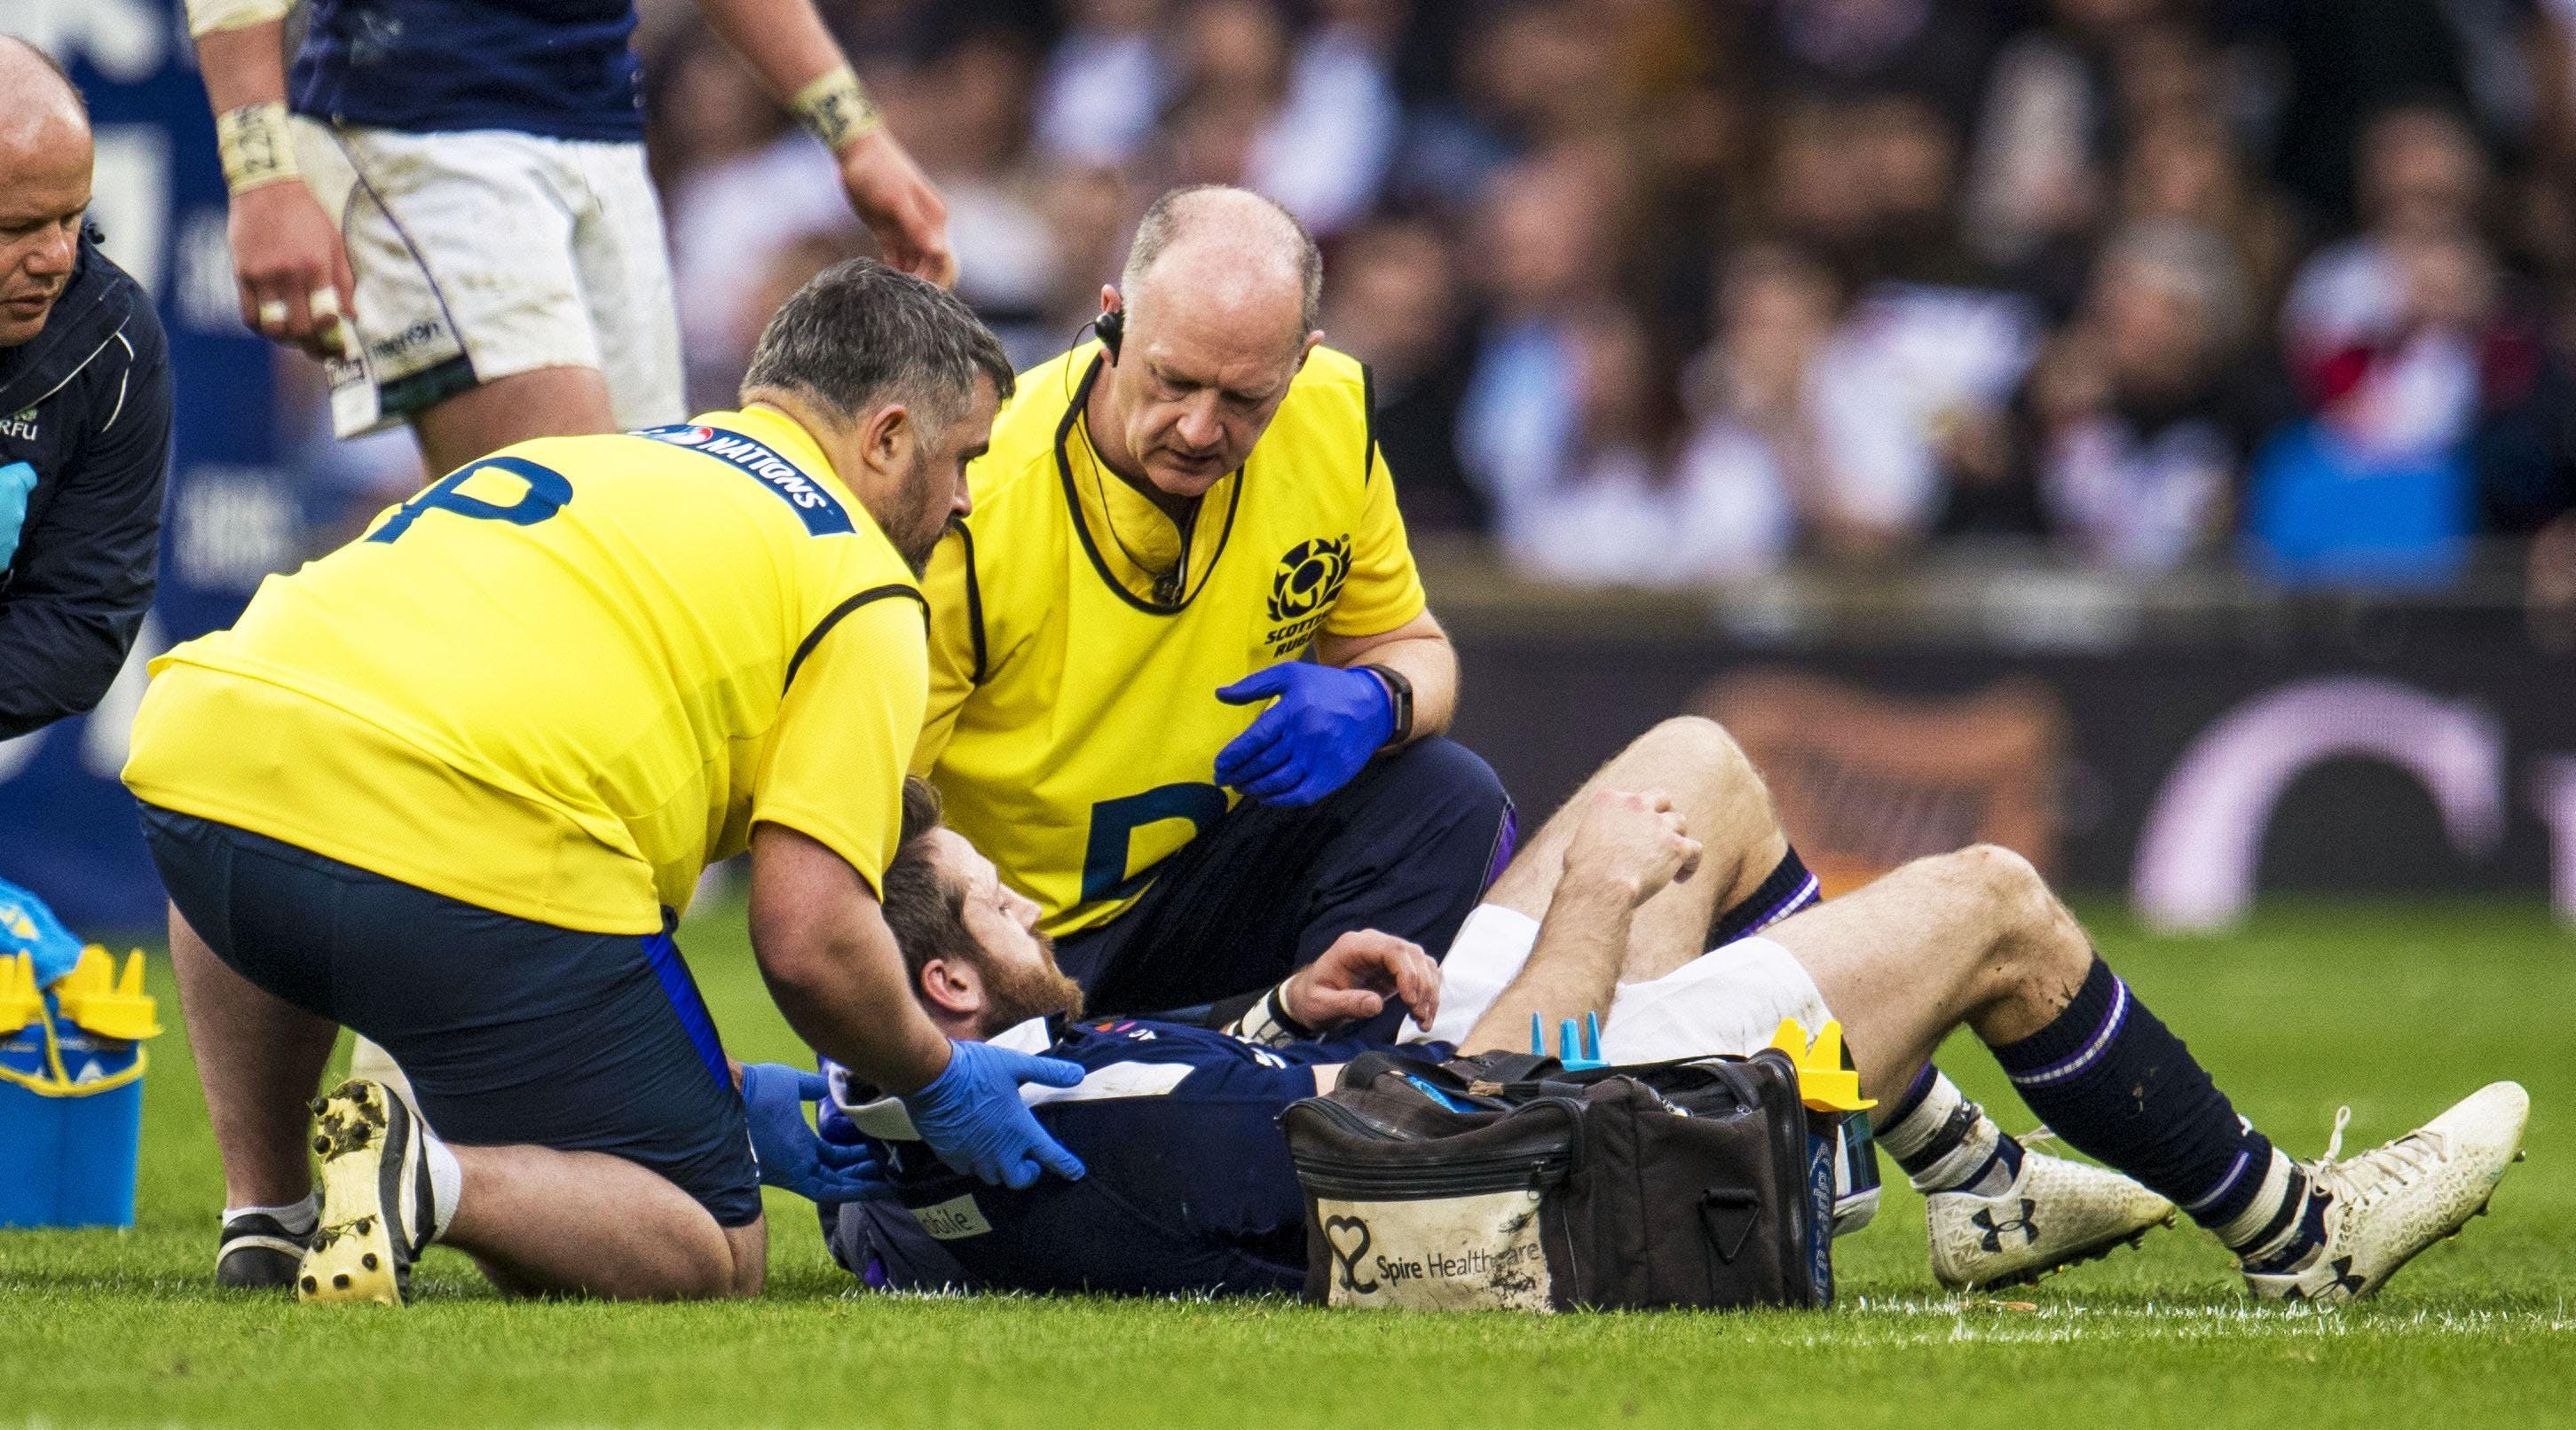 World Rugby Level 1: First Aid in Rugby - Gla